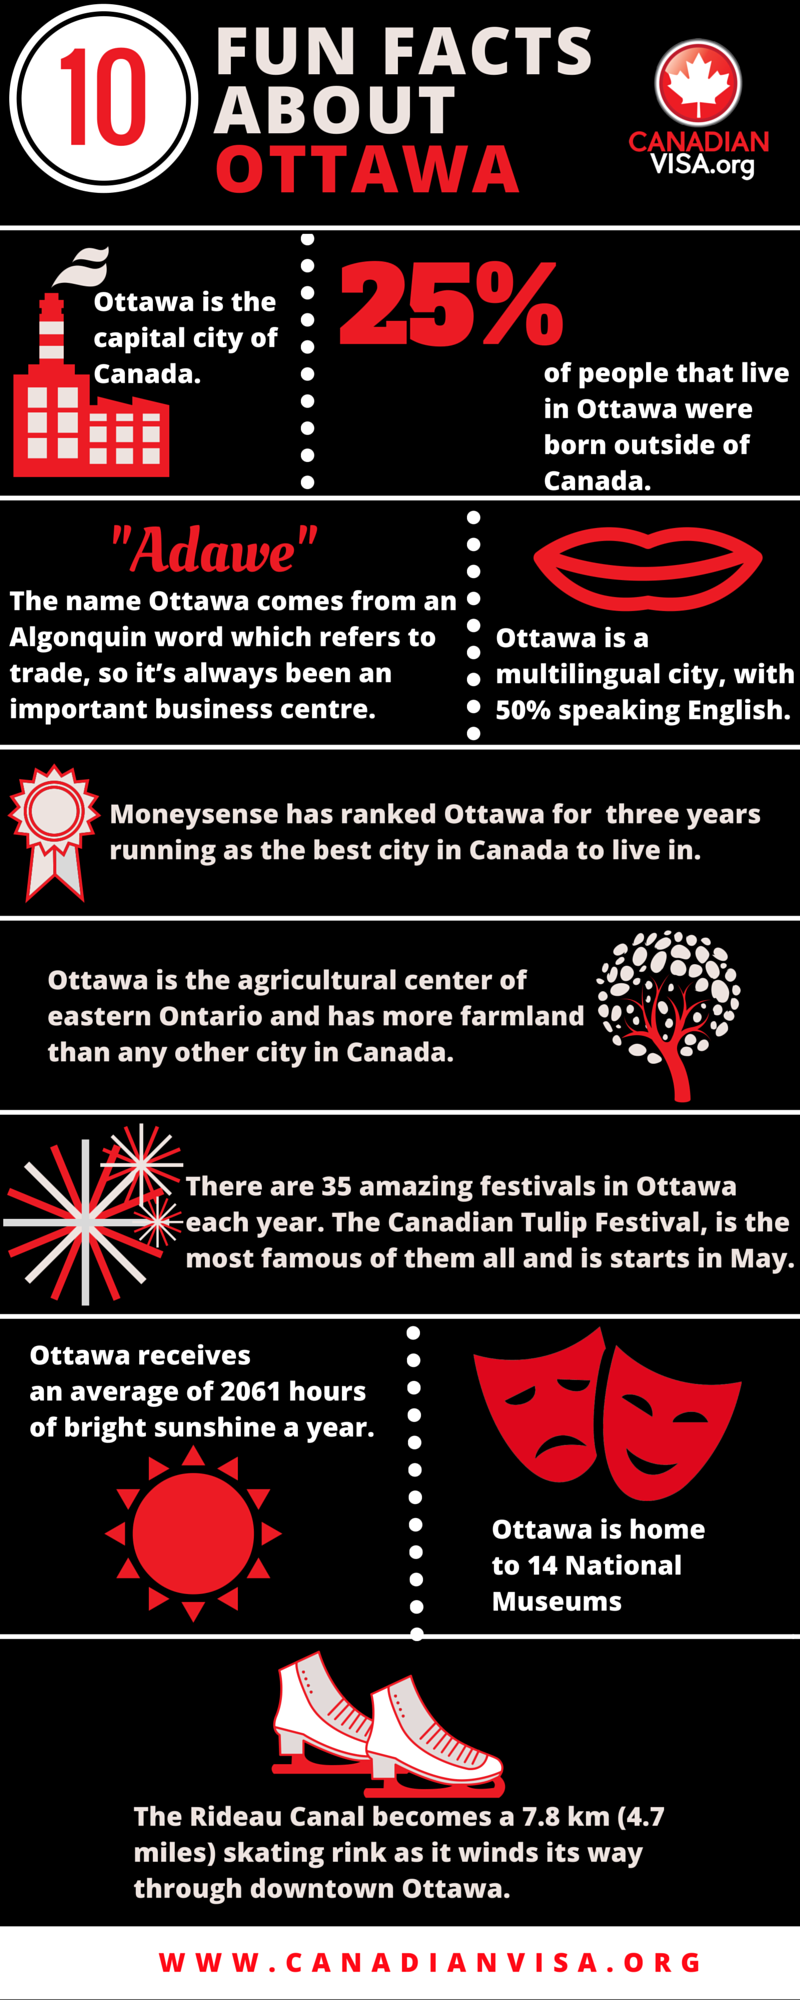 Infograph about 10 fun facts about Ottawa